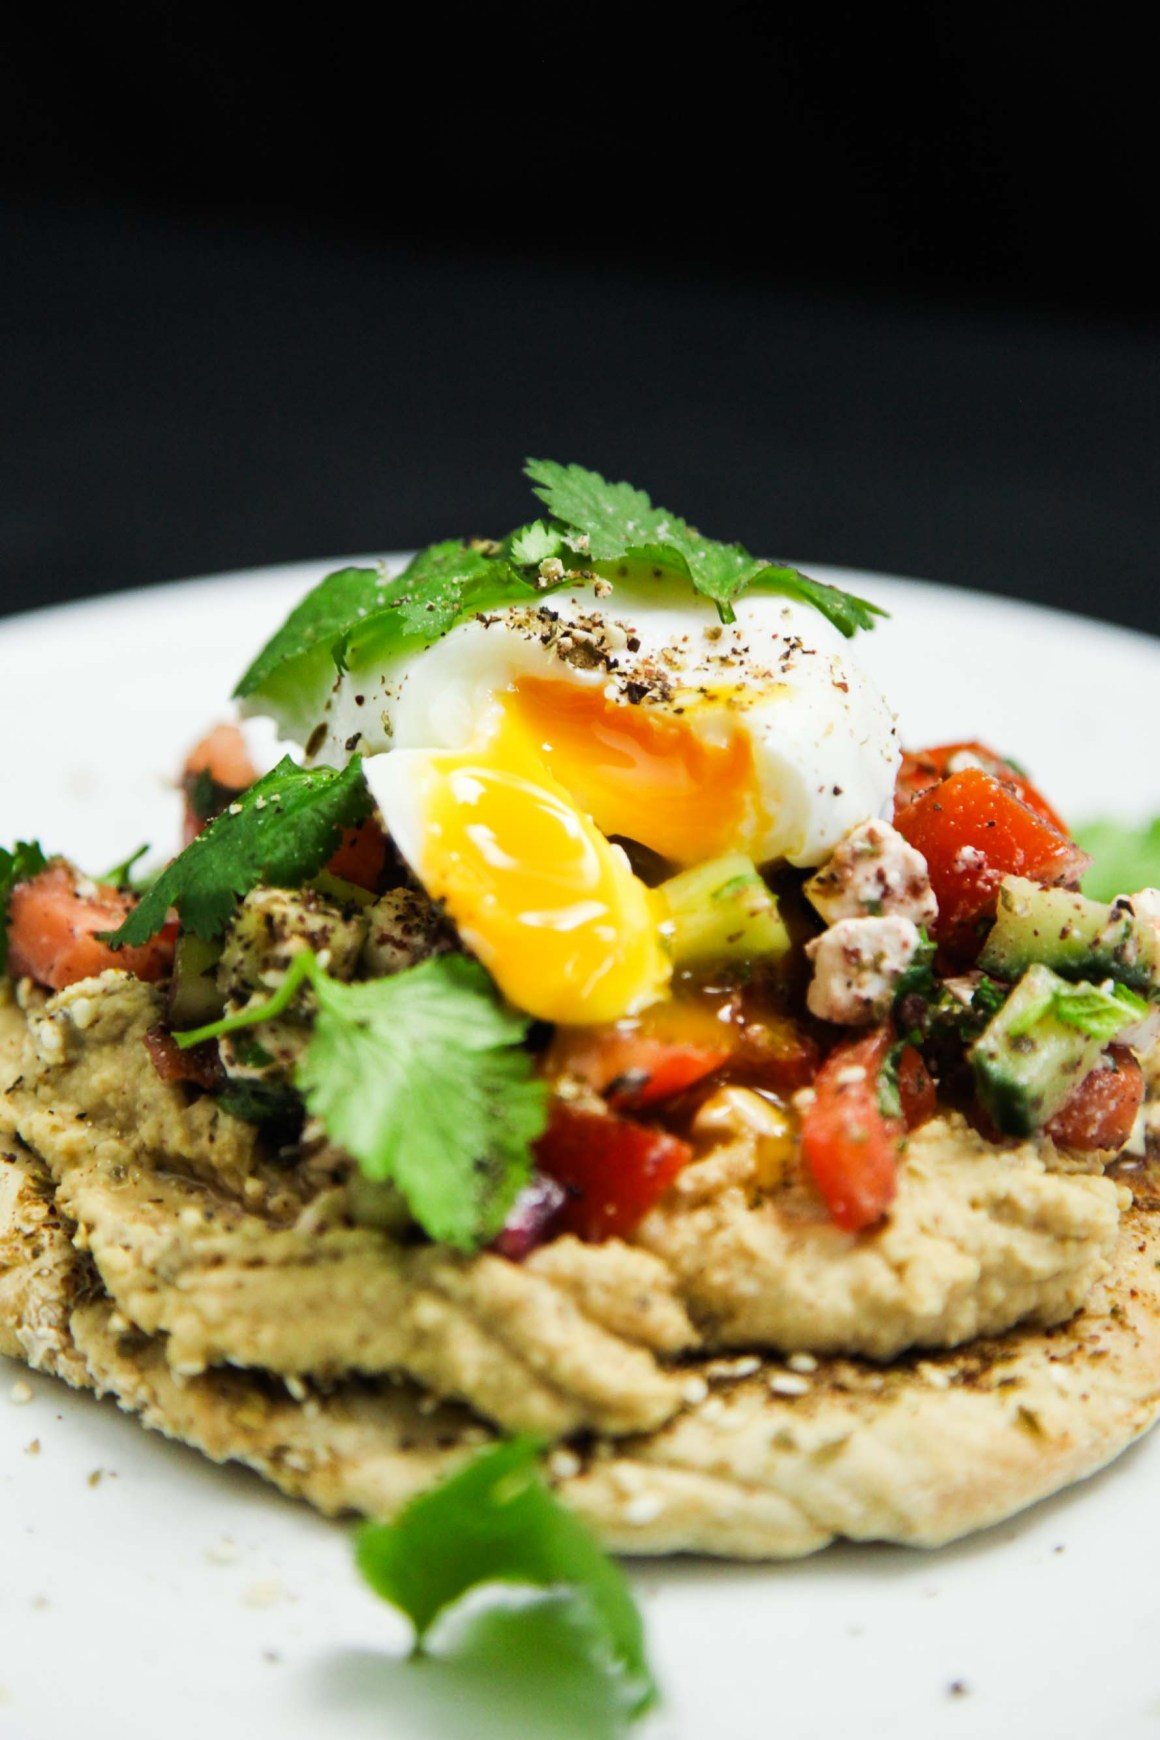 Easy Peasy Mediterranean Brunch with Hummus, Feta and Za'atar